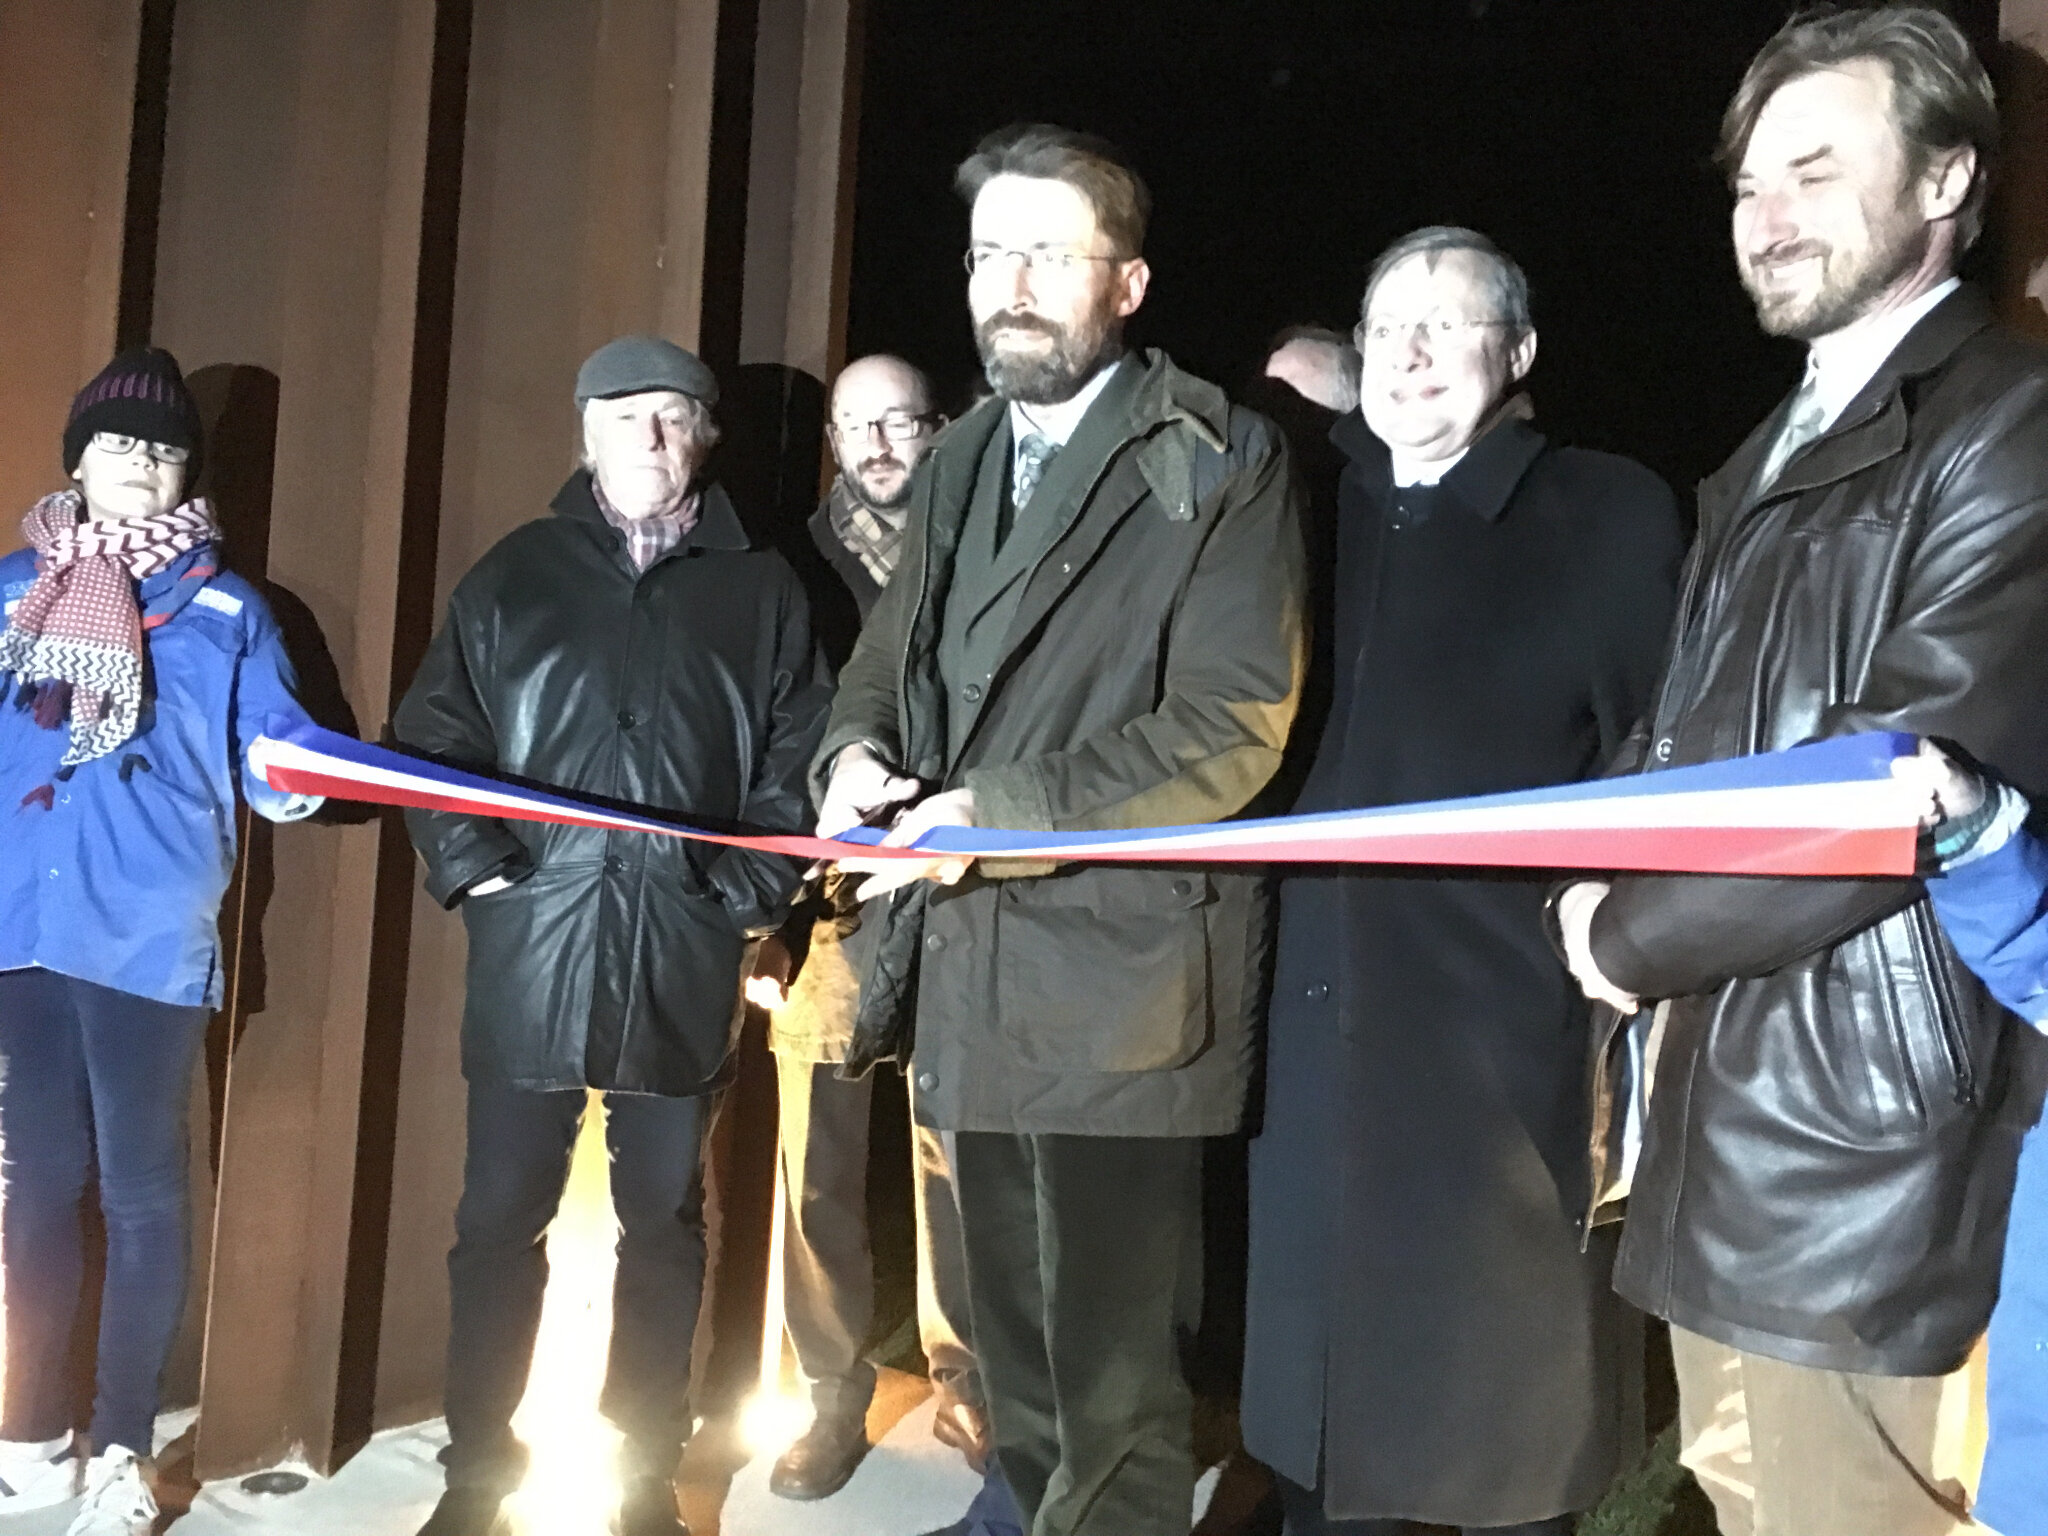 inauguration du square Thomas Becket à Avranches • vendredi 30 novembre 2018